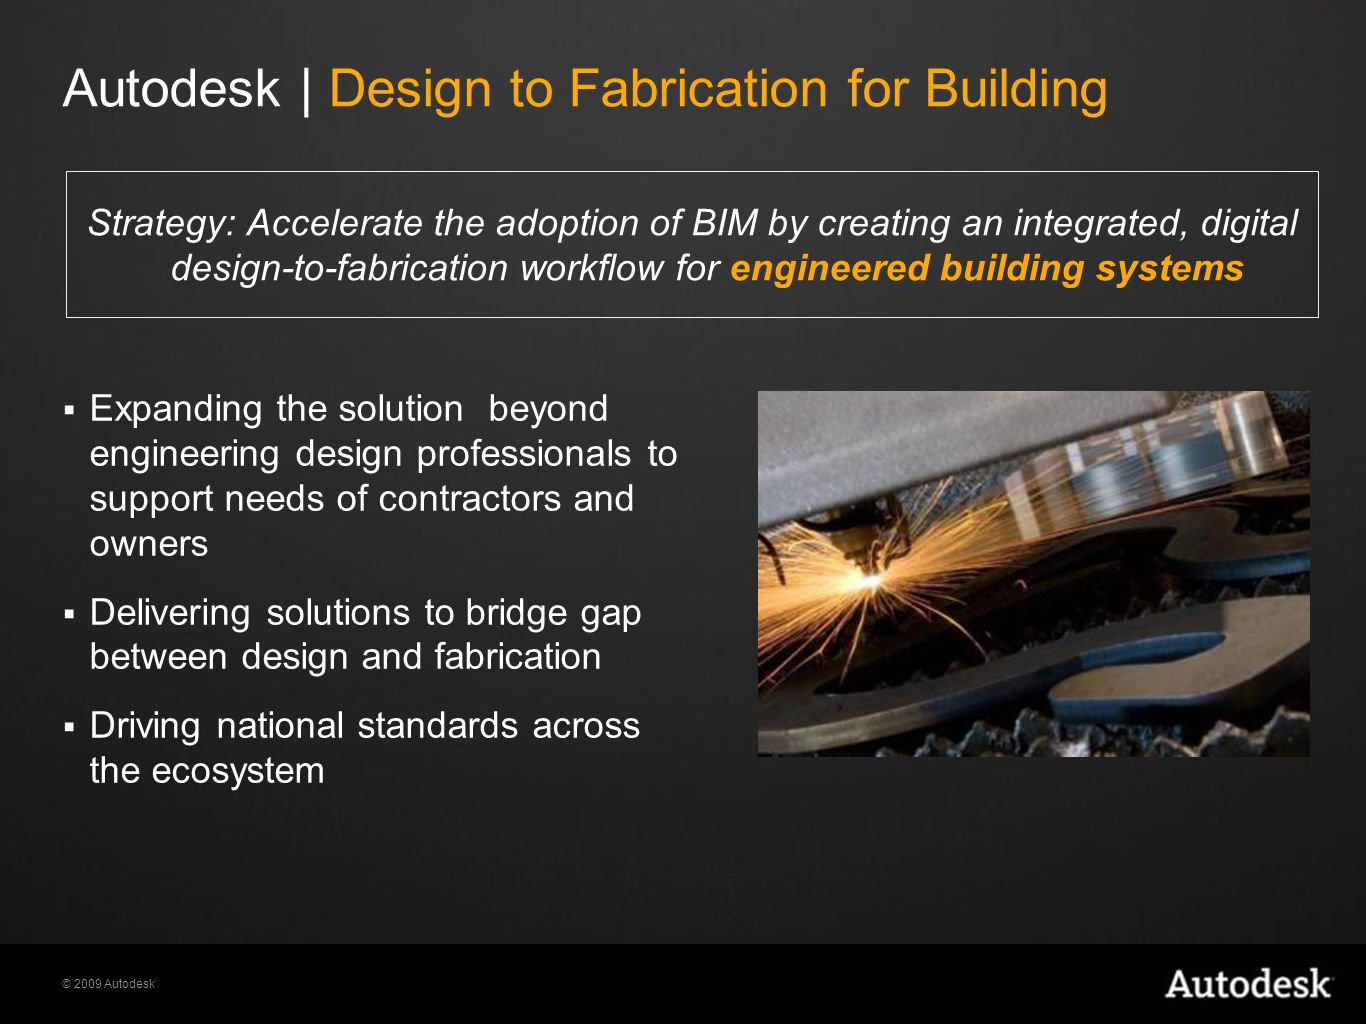 © 2009 Autodesk Autodesk, Karelcad and TSI are proud partners of the rollout of BIM-MEP AUS